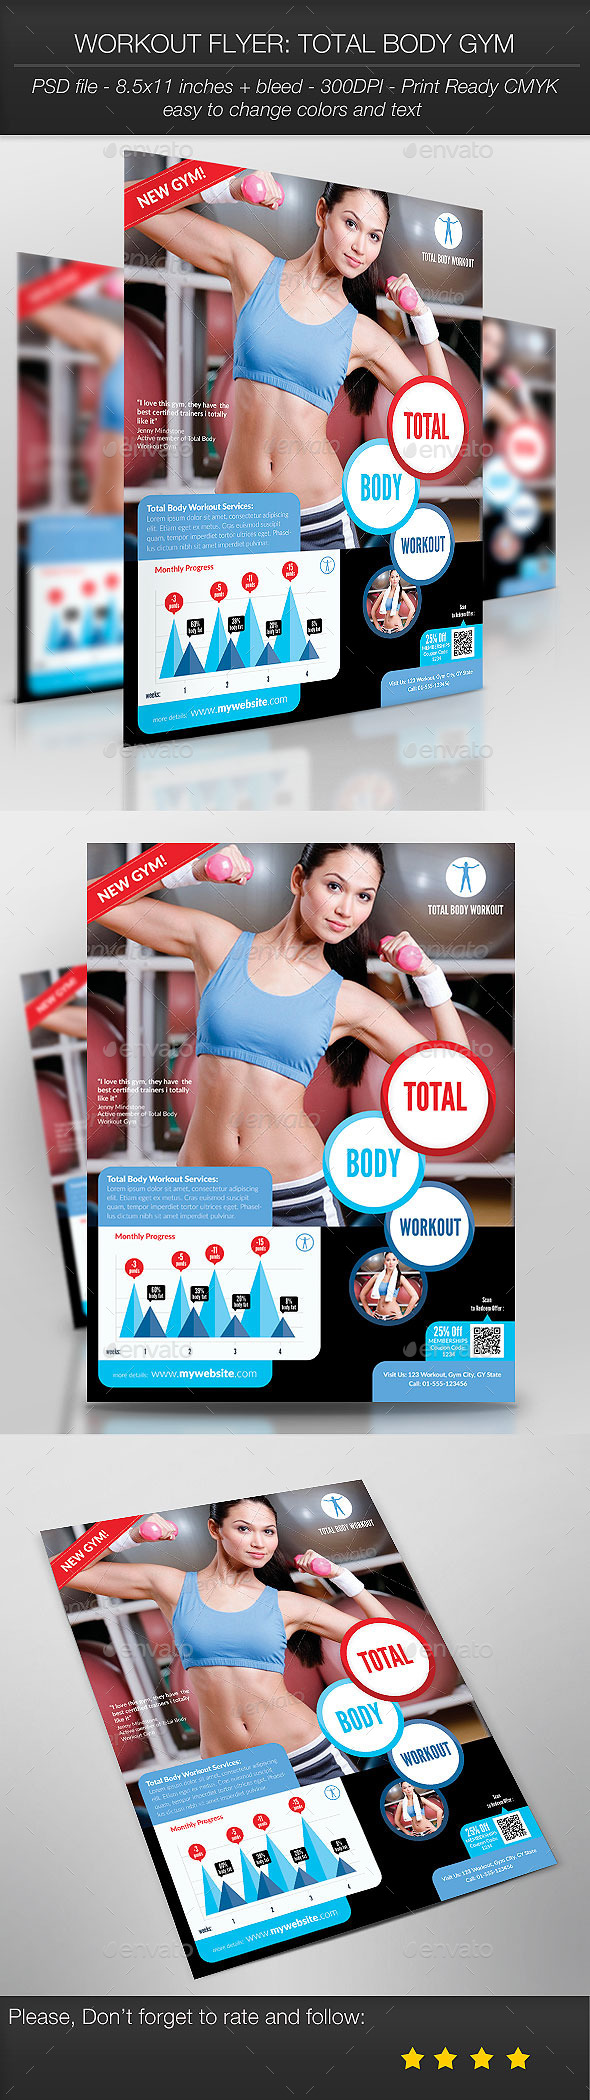 Workout Flyer: Total Body Gym - Sports Events